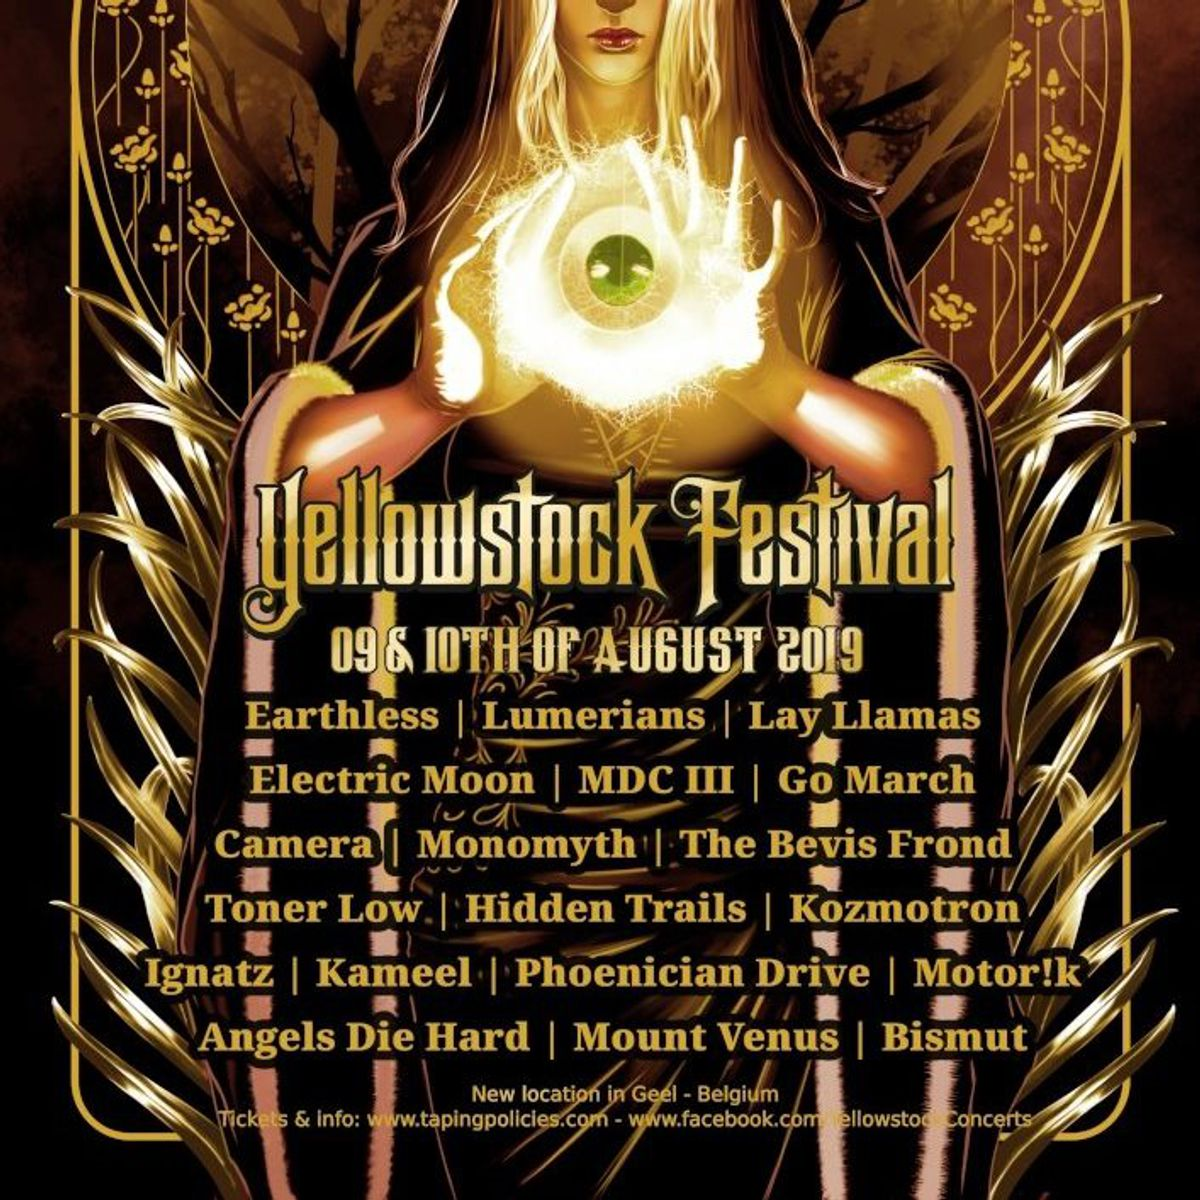 Yellowstock Festival 2019: space, the final frontier